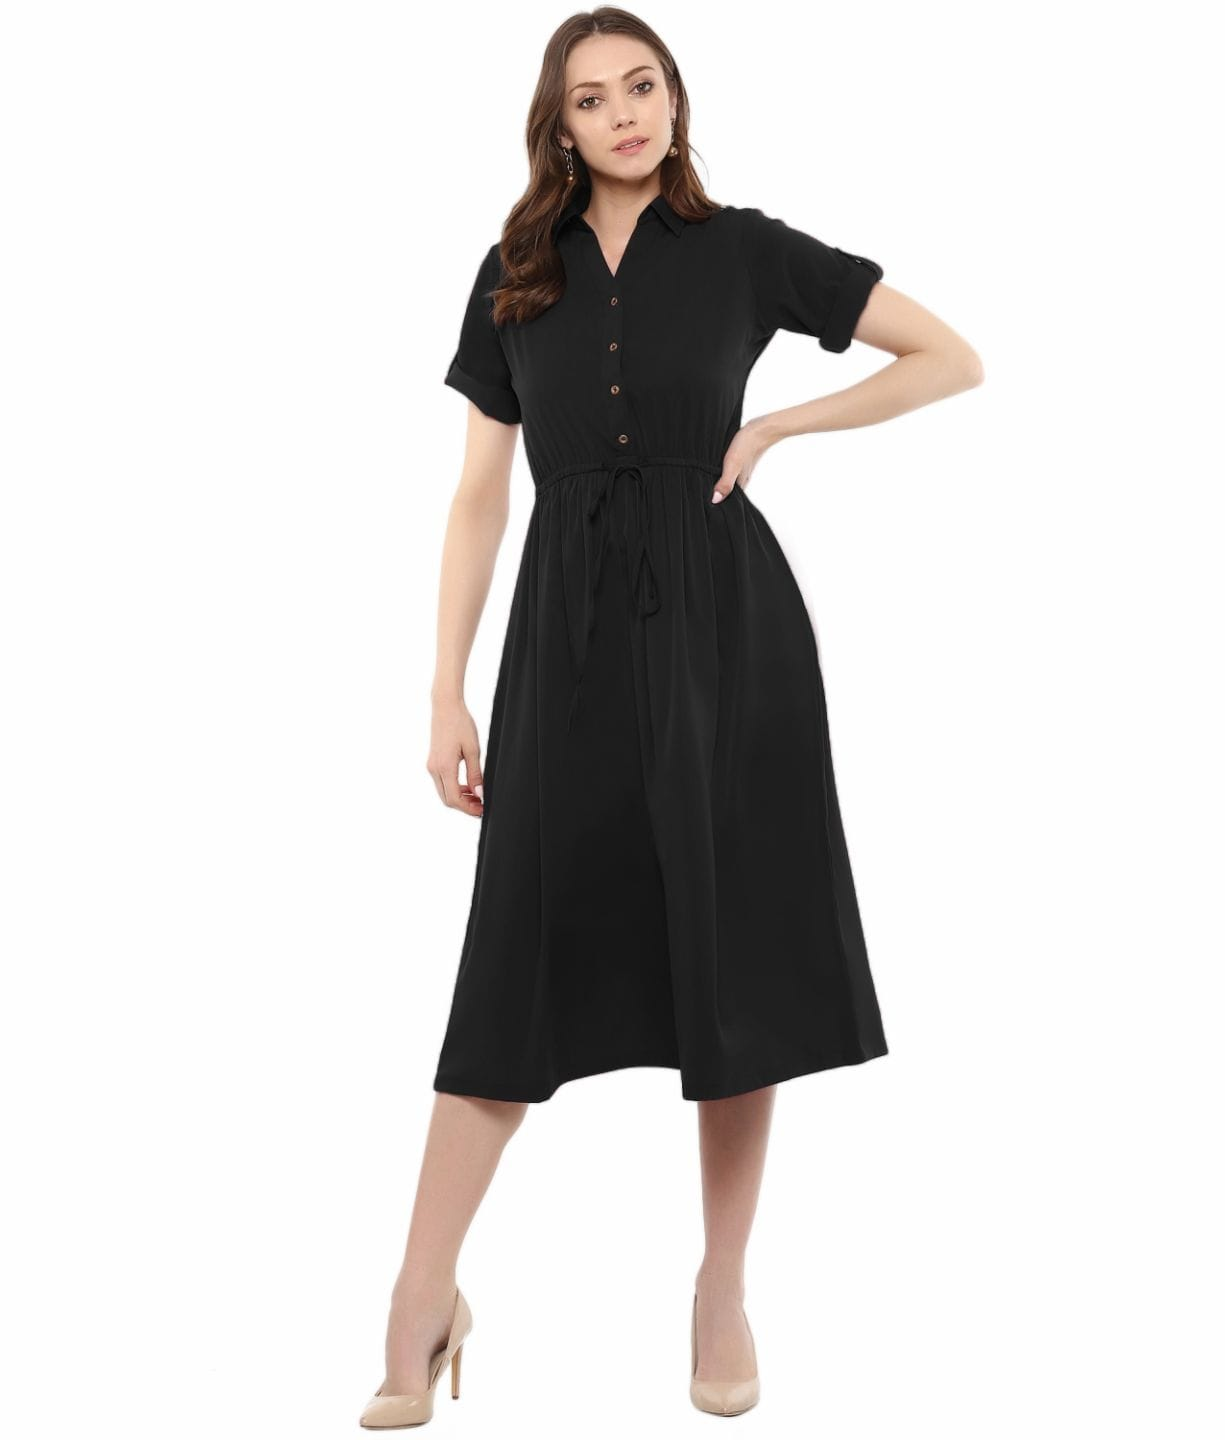 Black Solid Crepe Collar 3/4th Sleeves Skater Dress